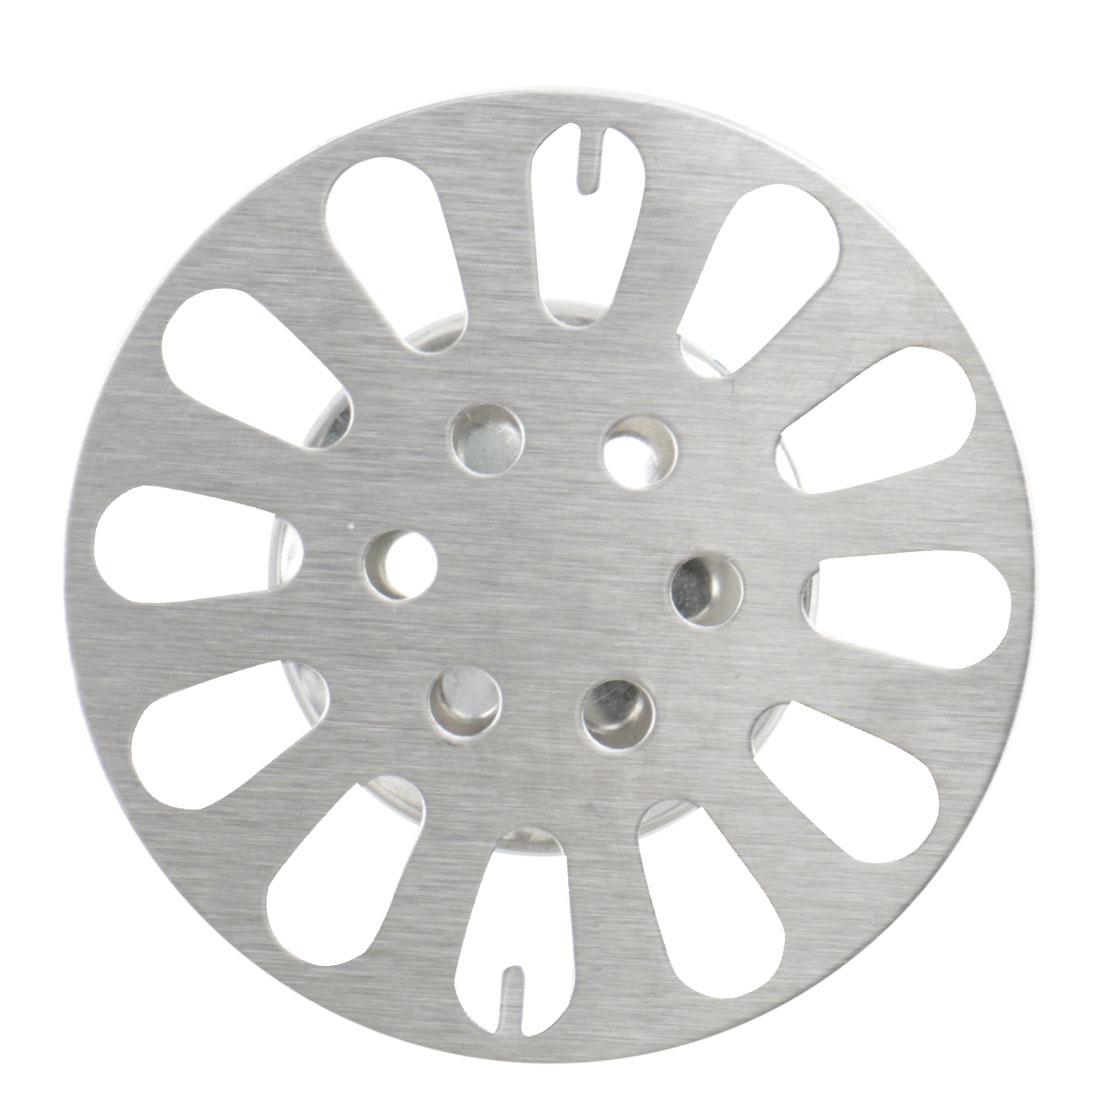 "3"" Dia Floor Drain Cover Hair Catchers Deodorant Filter Strainer Stopper"